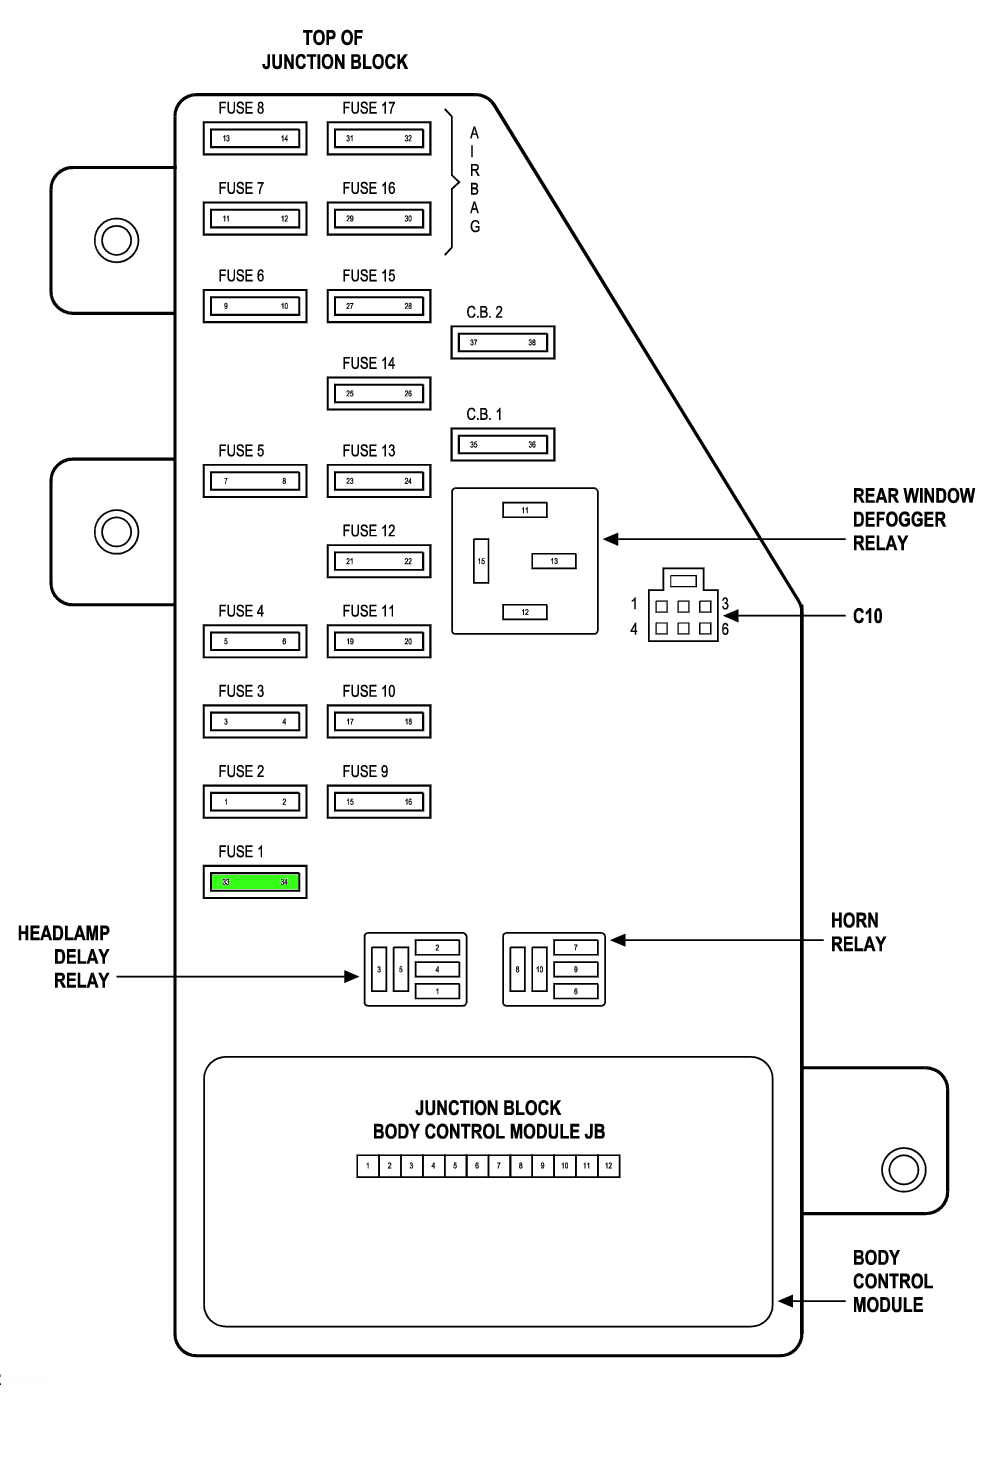 hight resolution of 2001 sebring fuse box diagram wiring diagram explained 2007 chrysler sebring wiring diagrams 2002 chrysler sebring radio wiring diagram